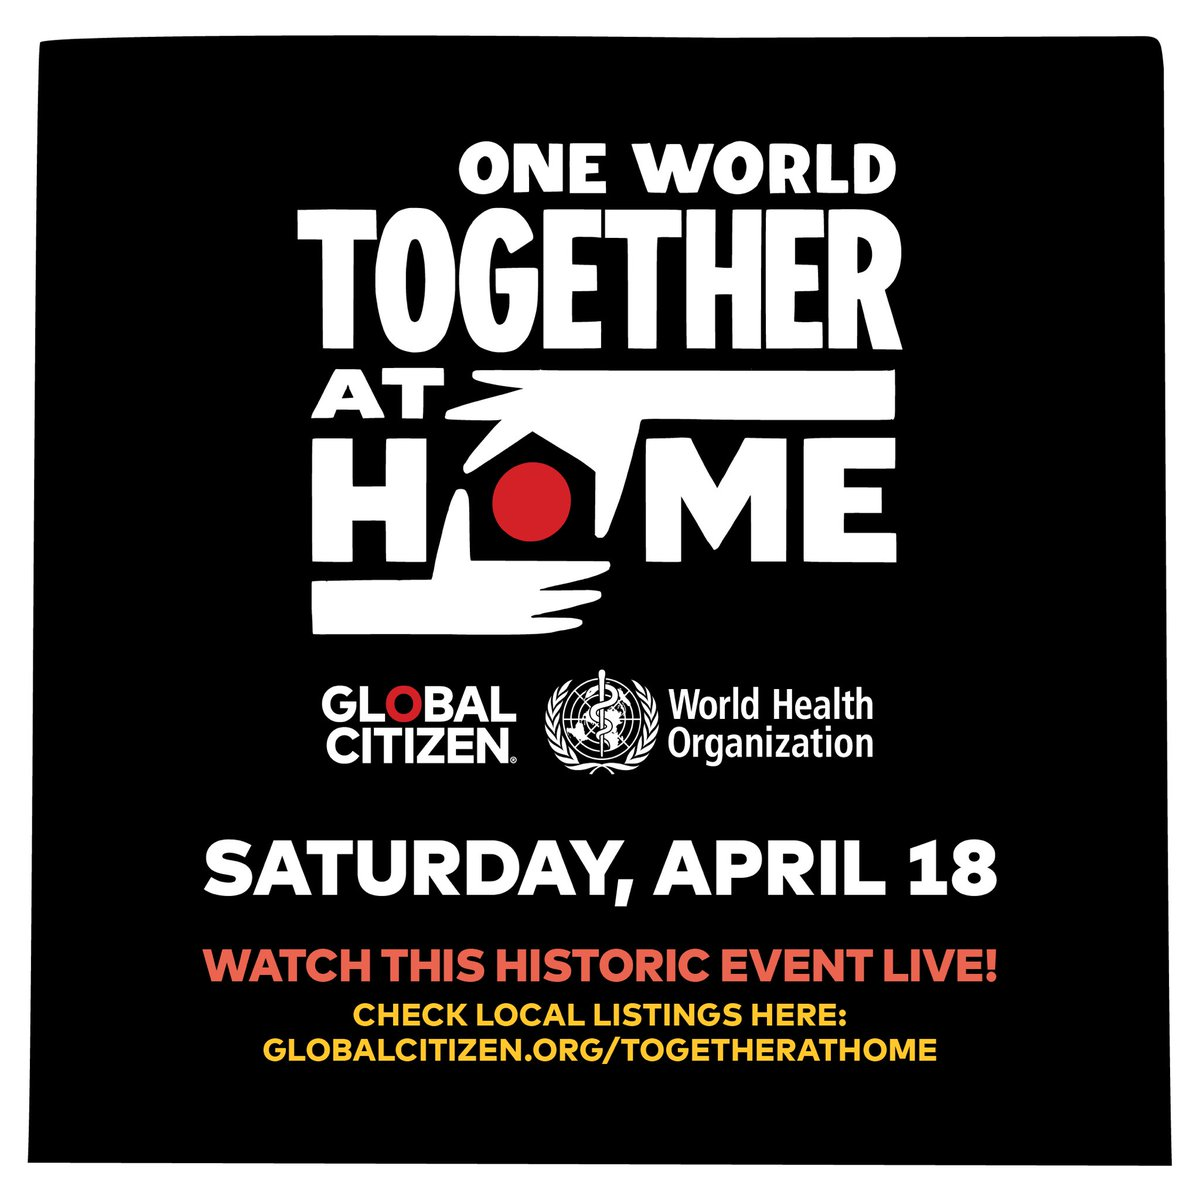 Healthcare workers on the frontlines of the COVID-19 crisis need our support. That's why I'm joining forces with @GlblCtzn and the @WHO for One World: #TogetherAtHome — a one-night special event on April 18. Join me and take action now:https://t.co/mGIm2bs1uZ https://t.co/jp7Tr5ZFCO